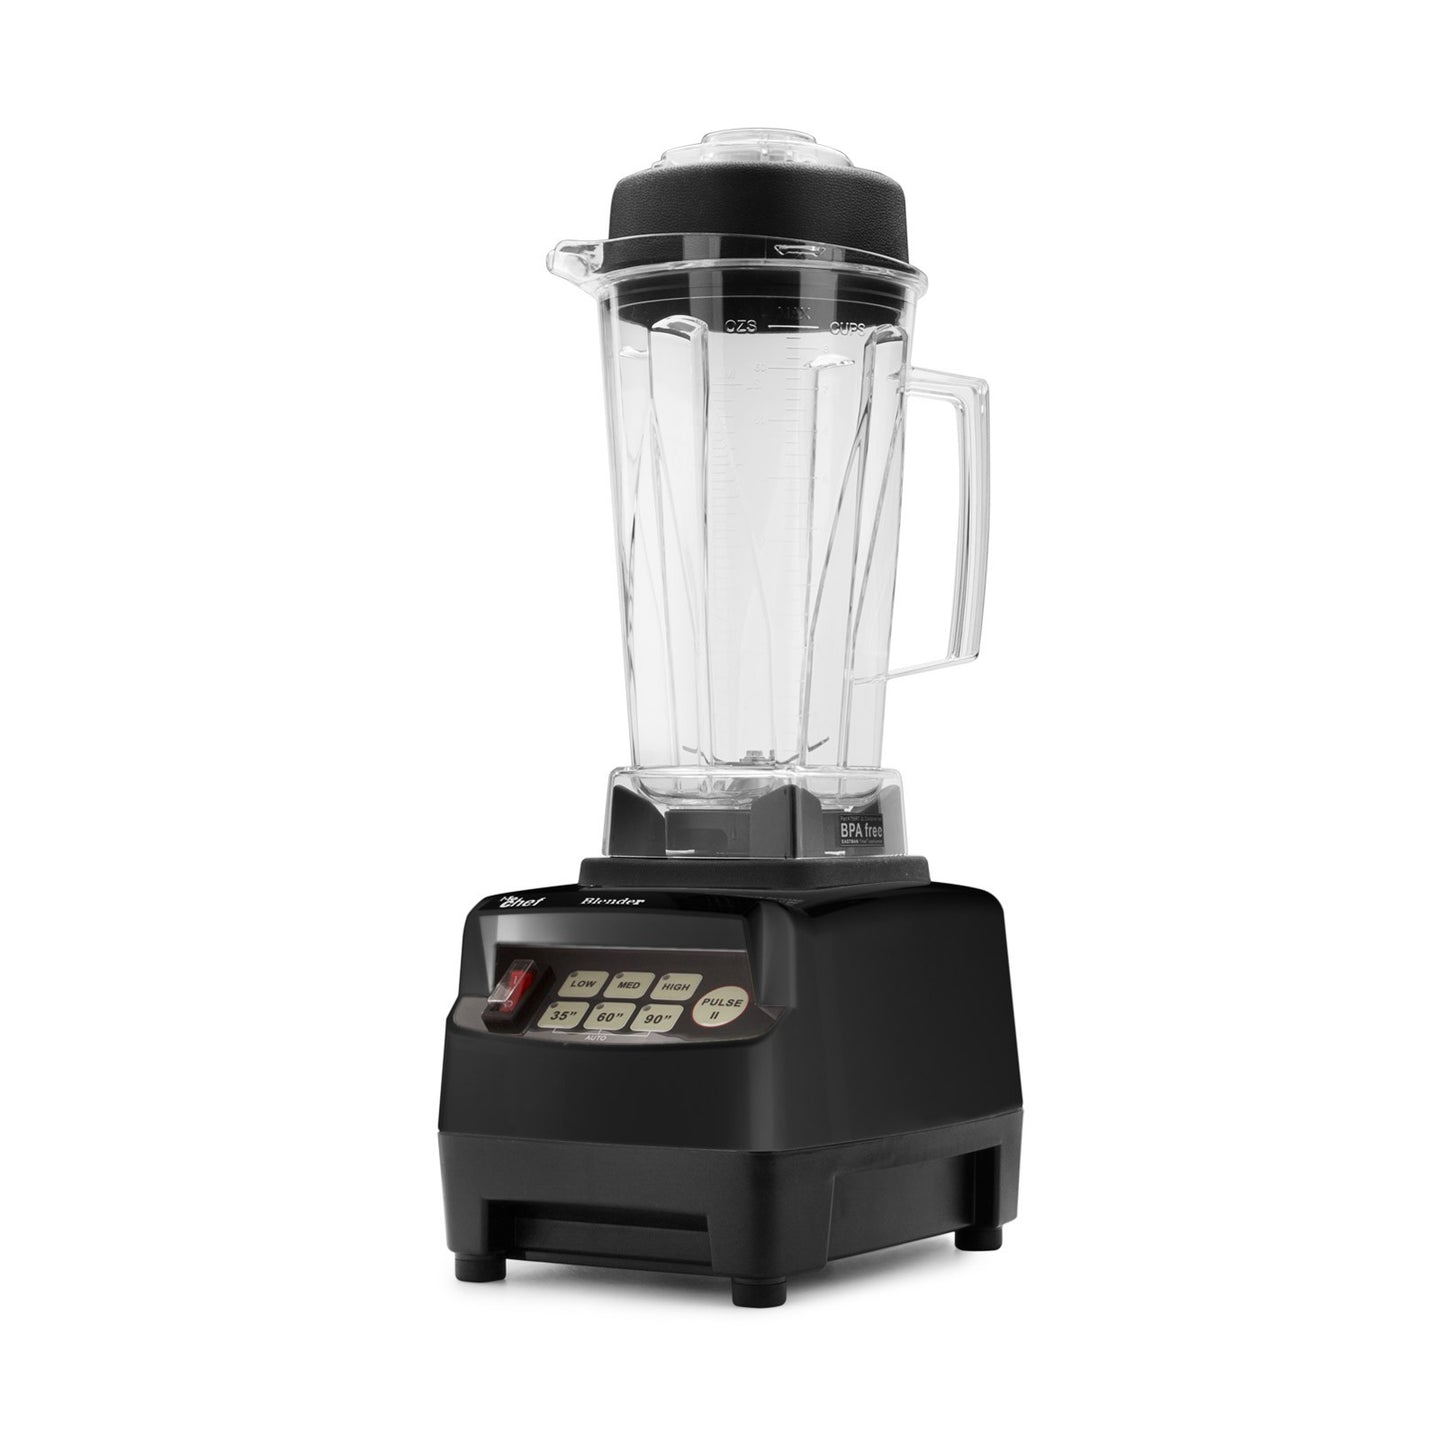 BioChef High Performance Blender - Black